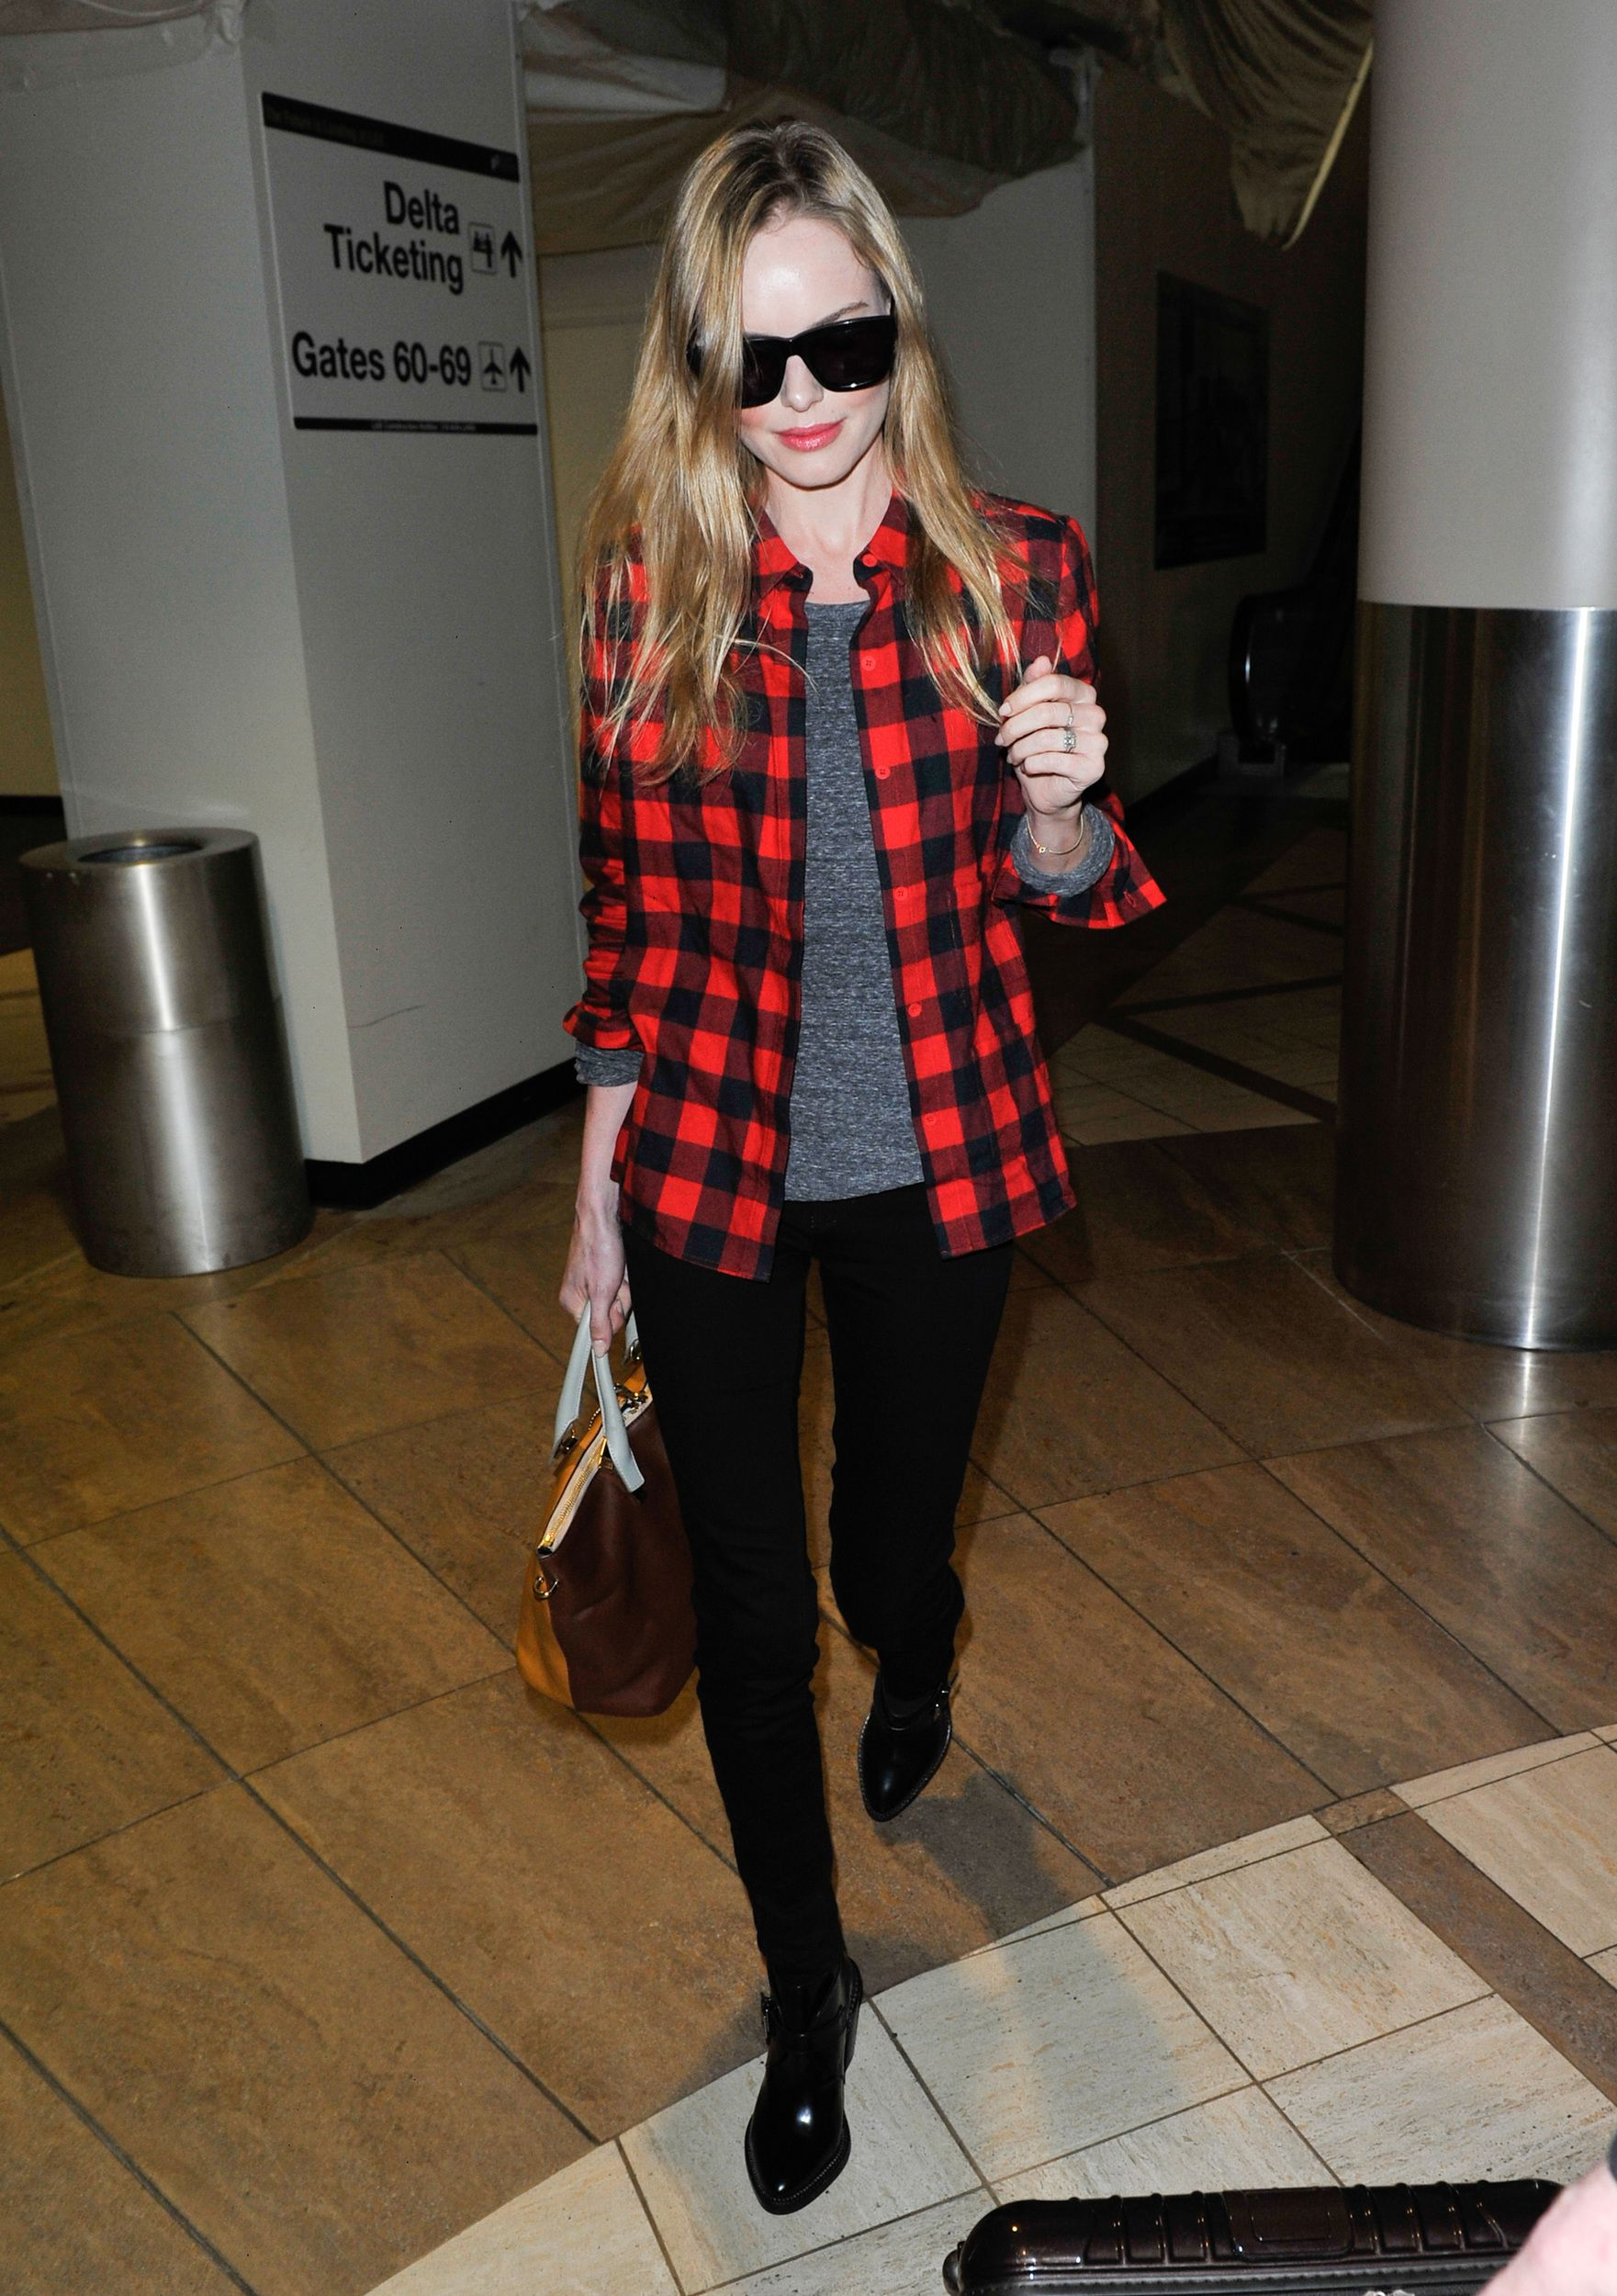 Kate Bosworth at Los Angeles International airport, wearing black pants, low boots and a checked red and black button-up. via @stylelist